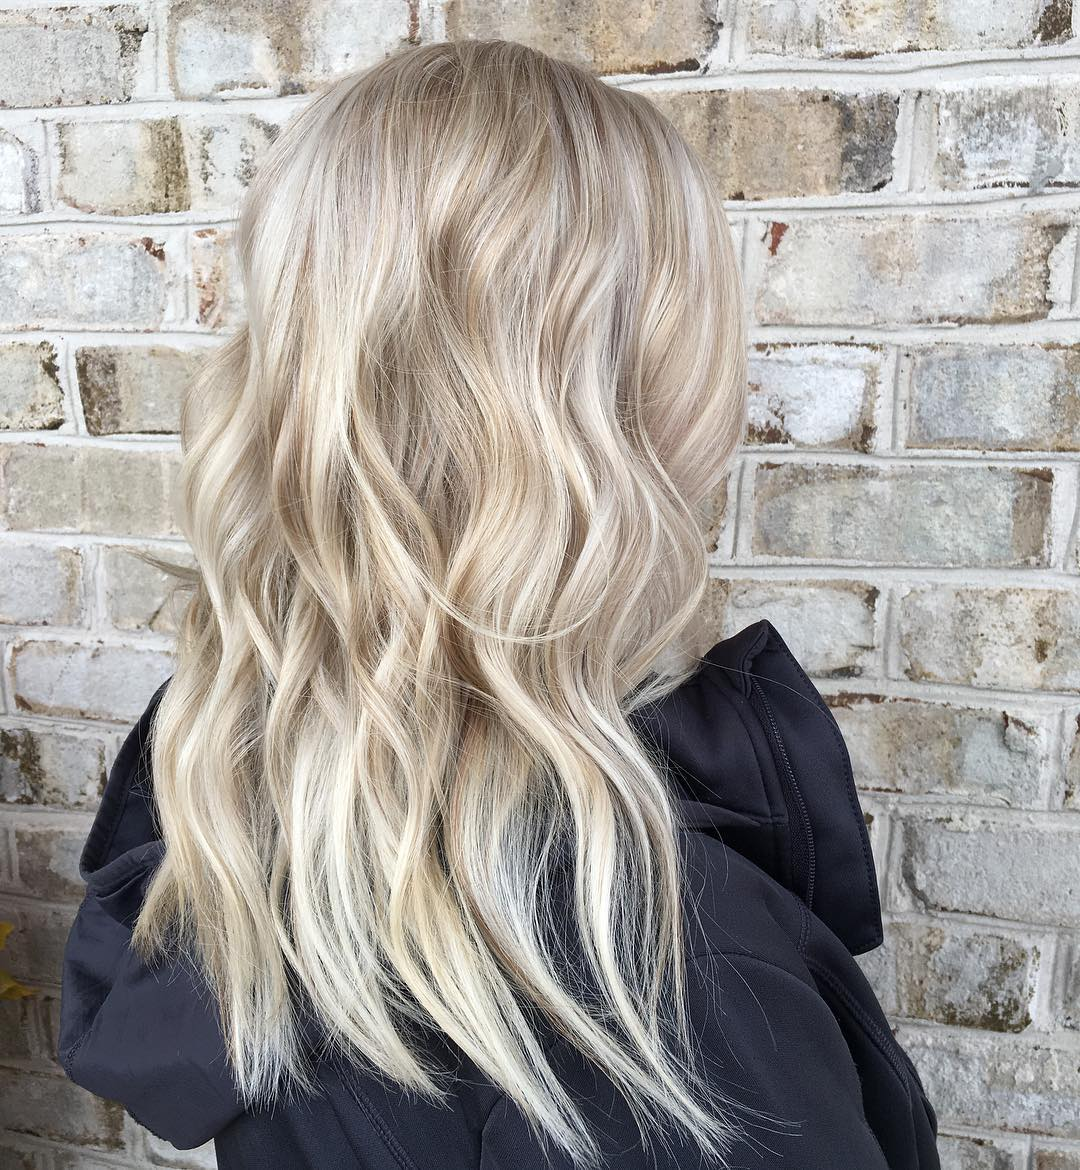 Wavy blonde hair with lowlights